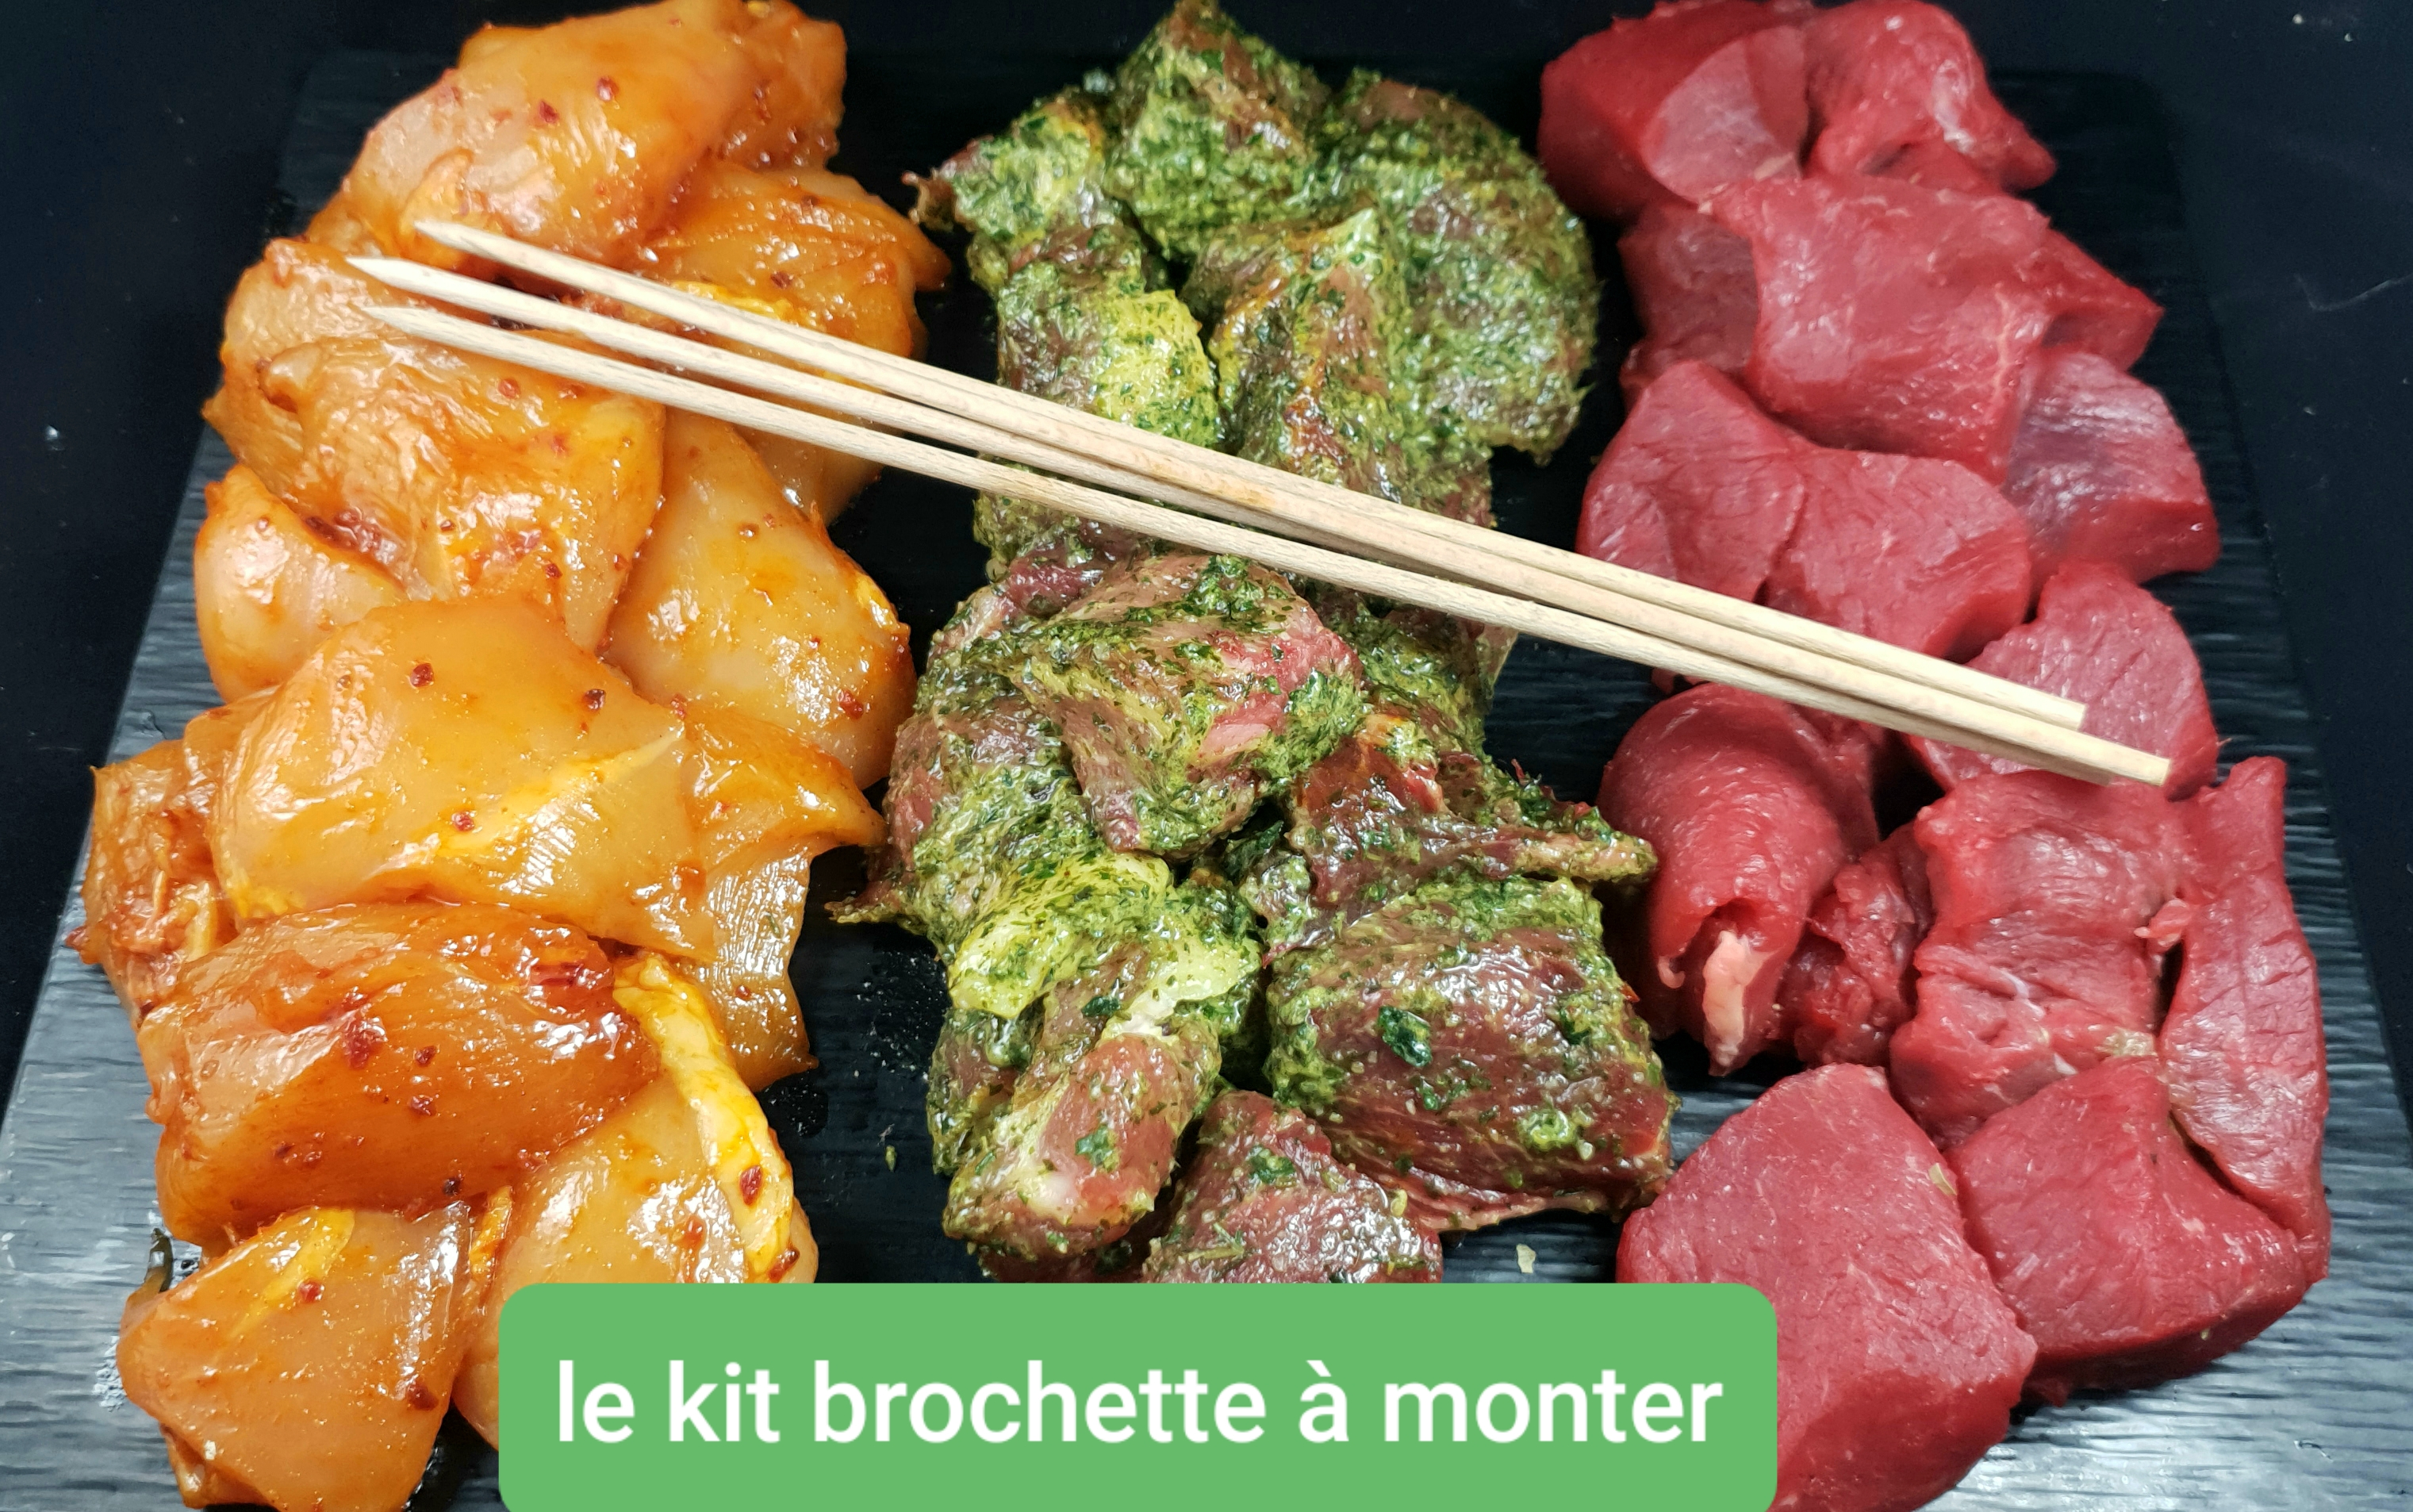 KIT BROCHETTE